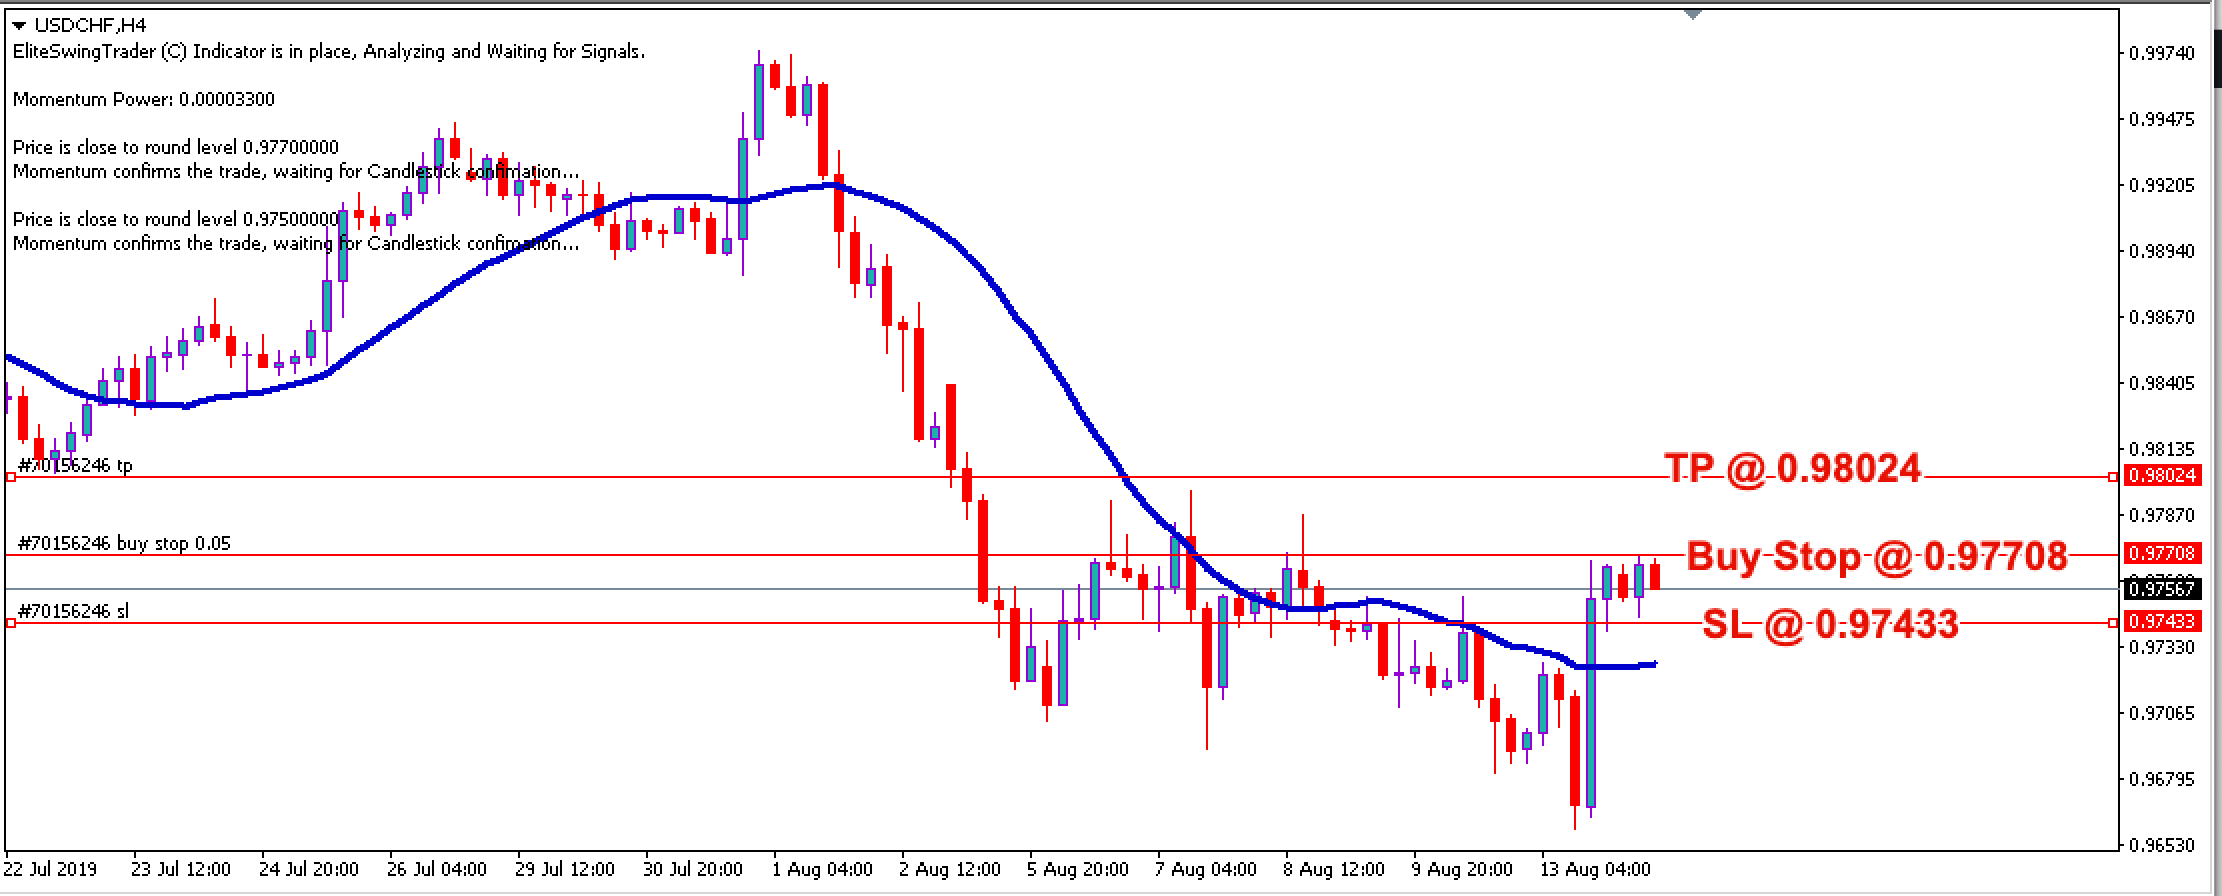 Elite Swing Trader Trade Signals USDCHF – 14th August 2019